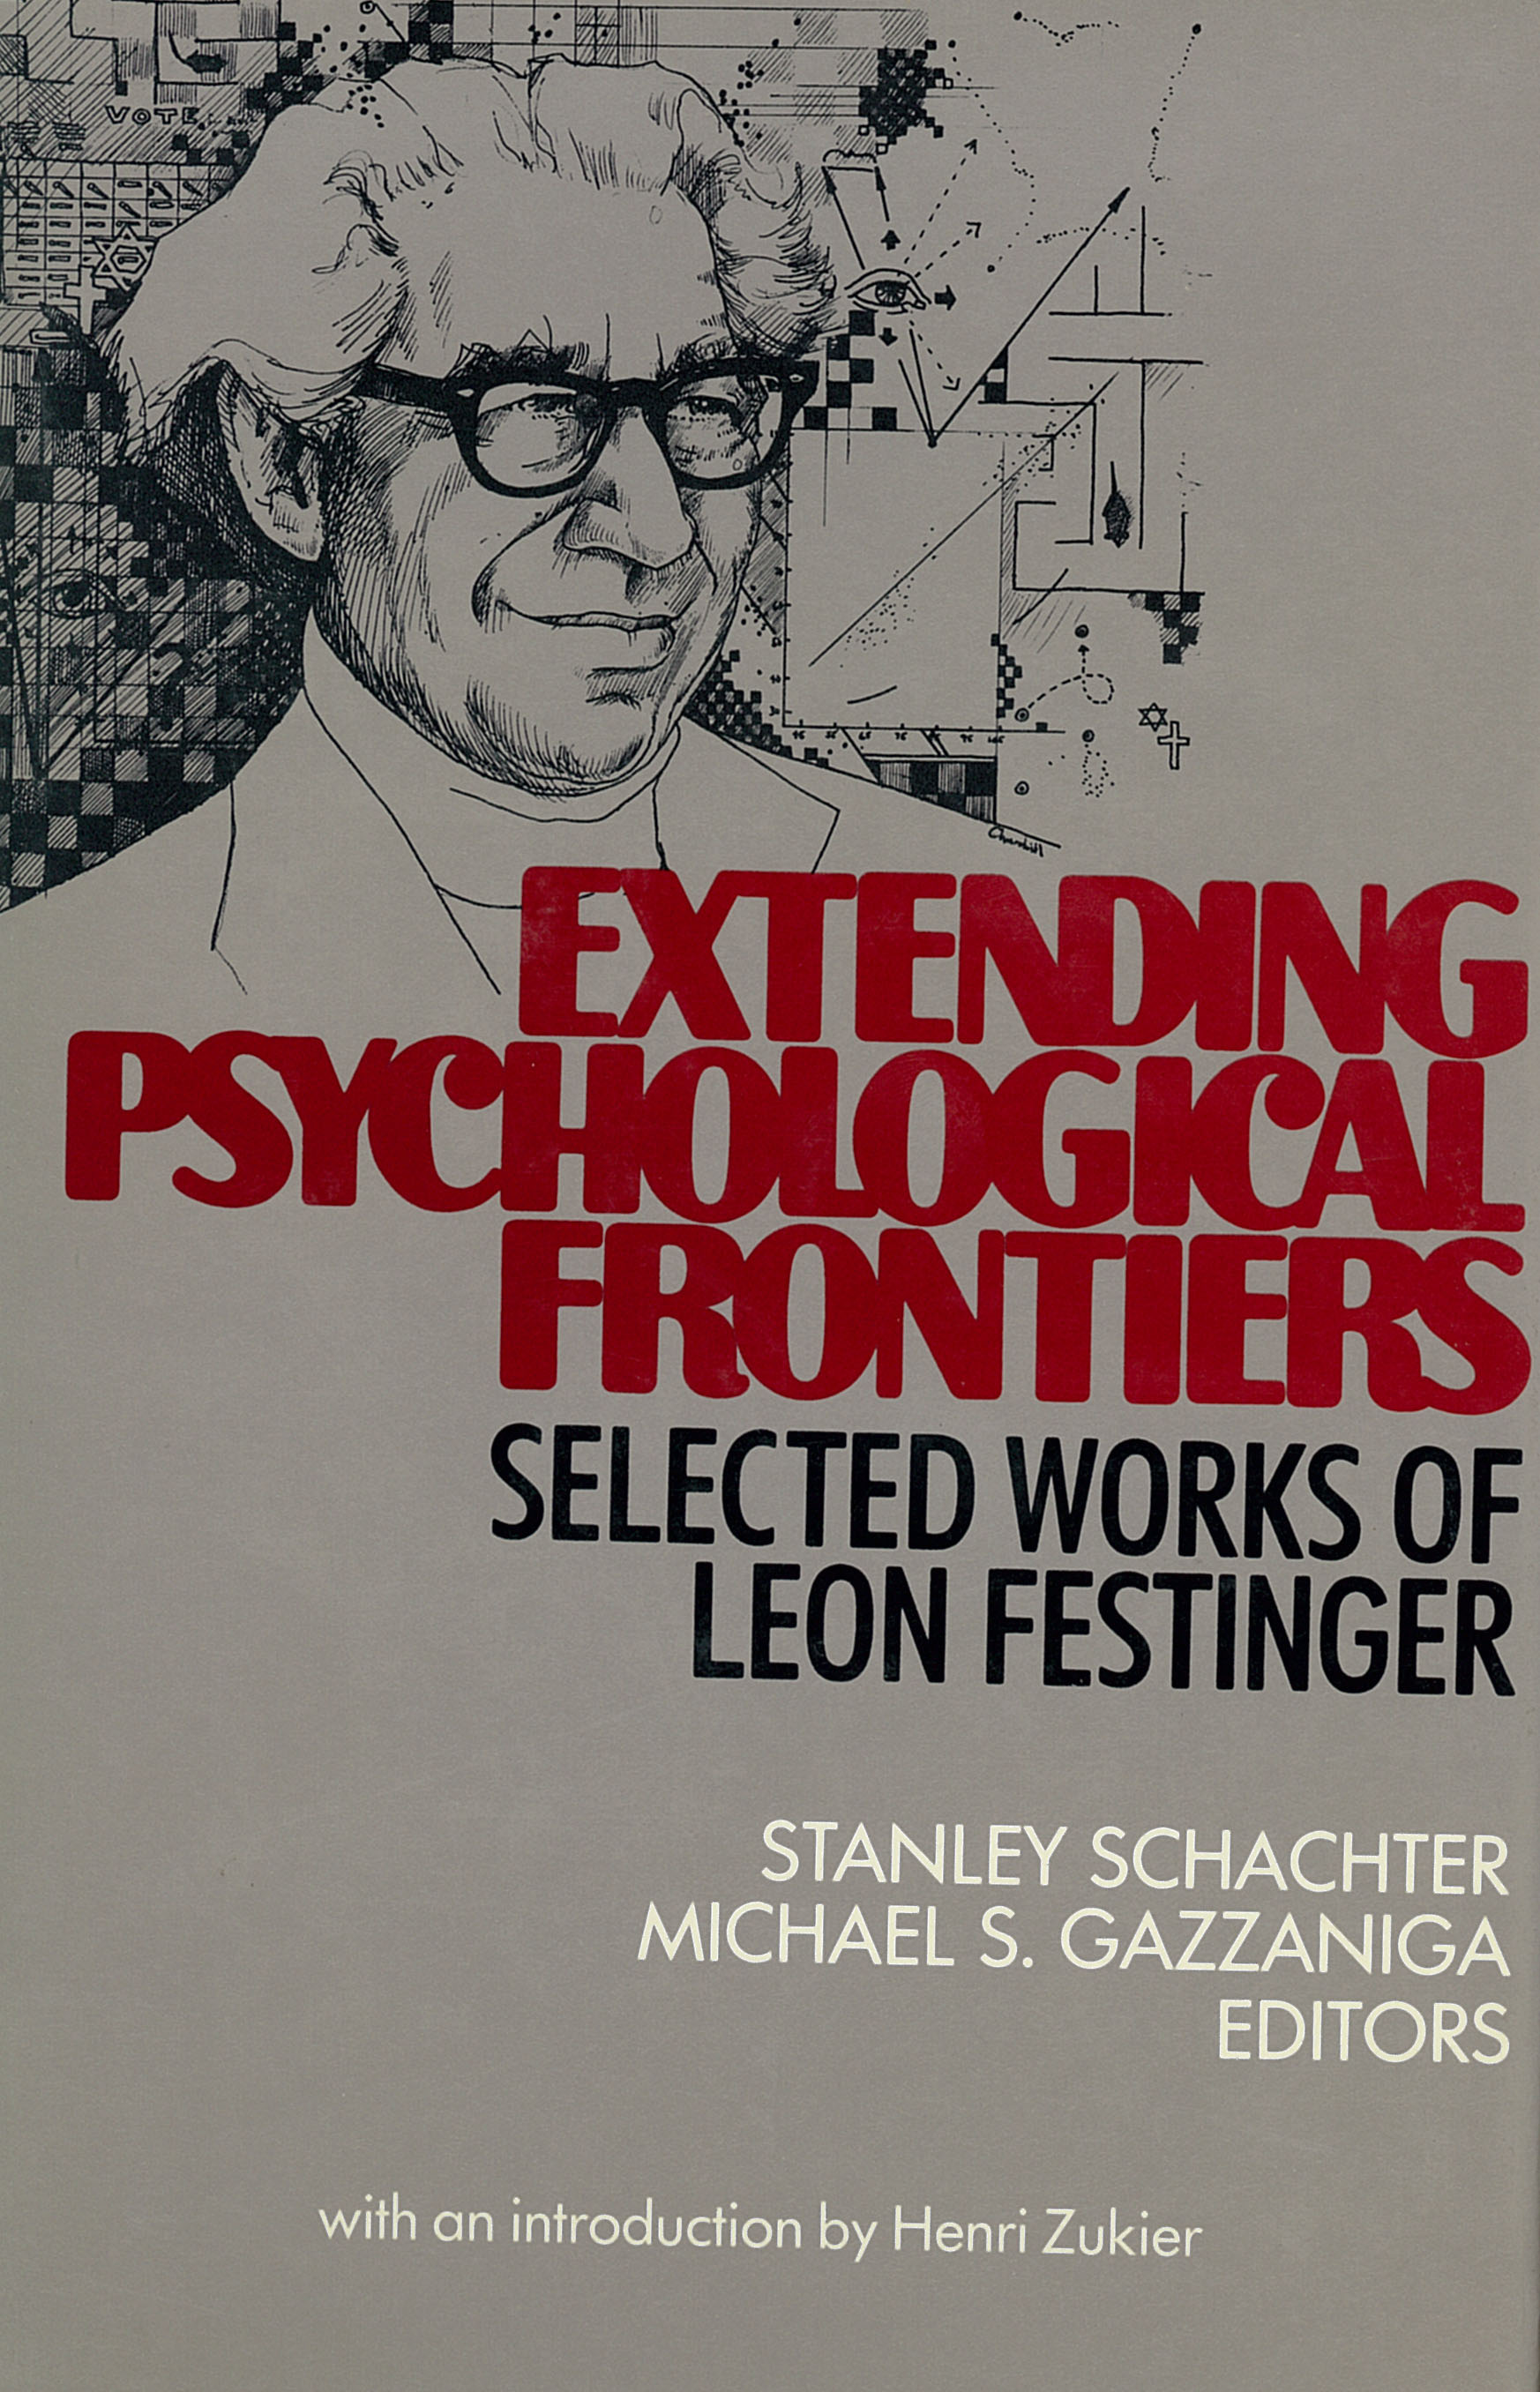 psychology frontiers and applications table of contents